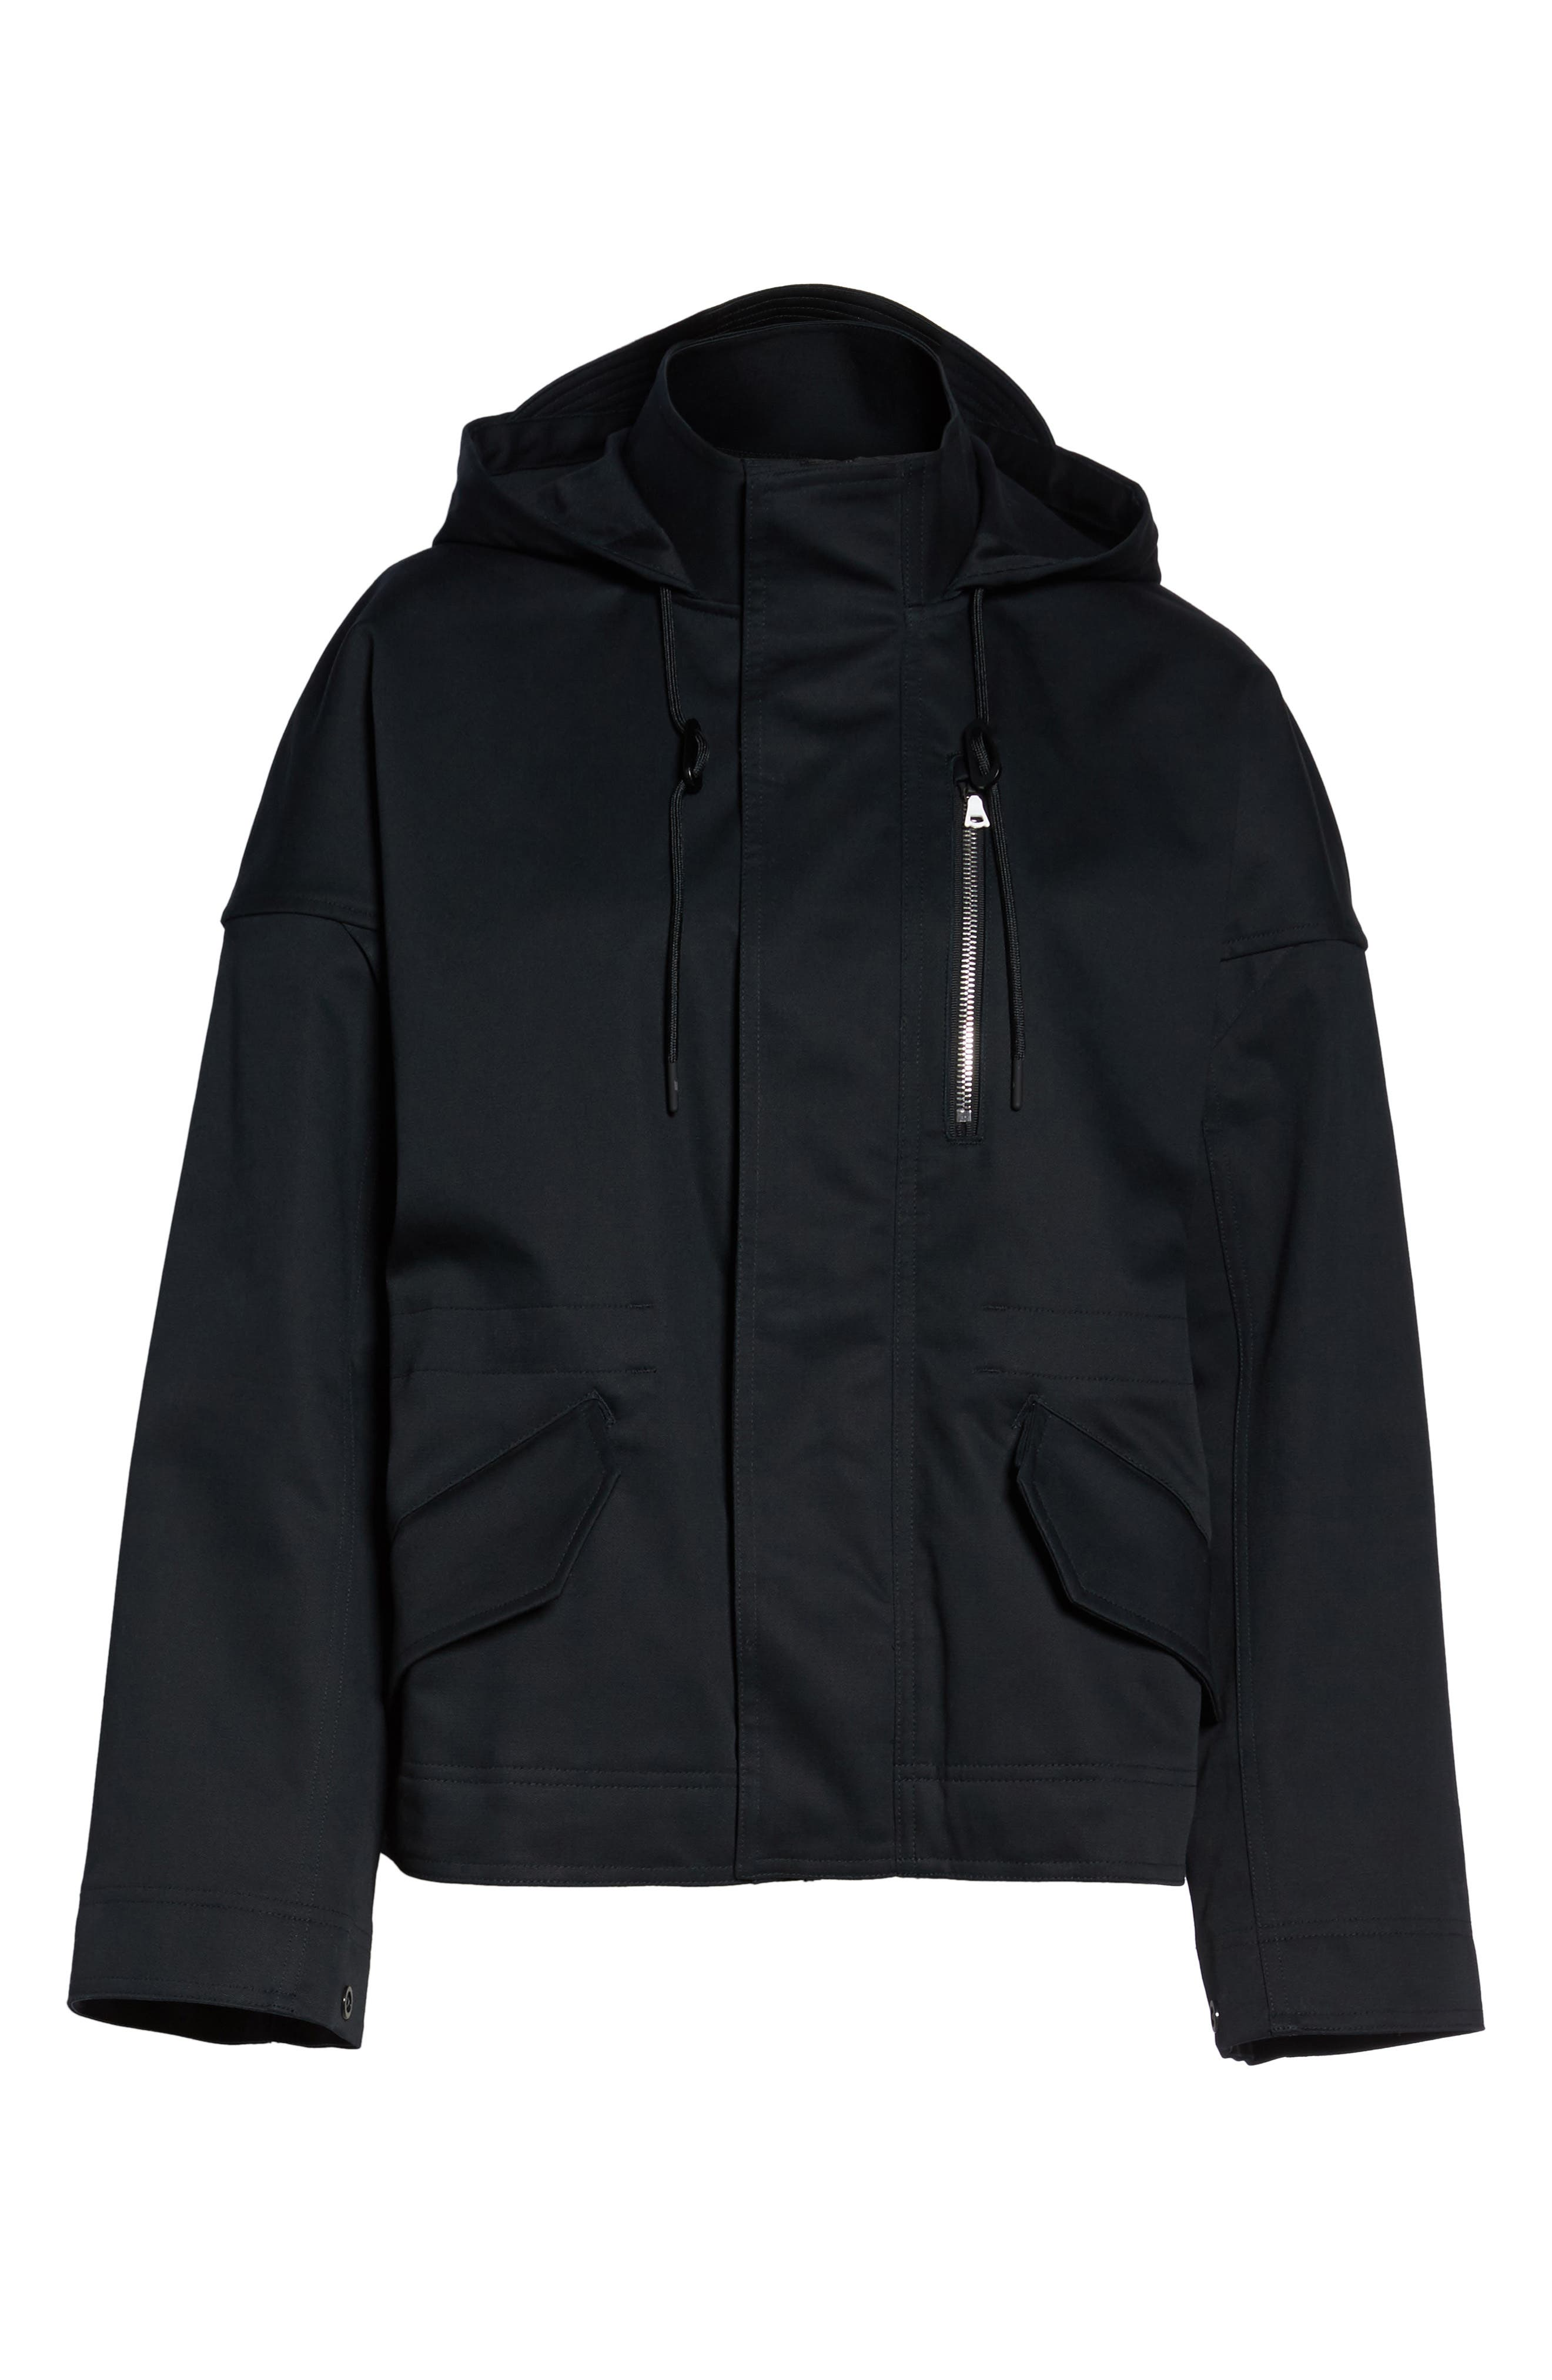 NikeLab Collection Women's Tactical Jacket,                             Alternate thumbnail 9, color,